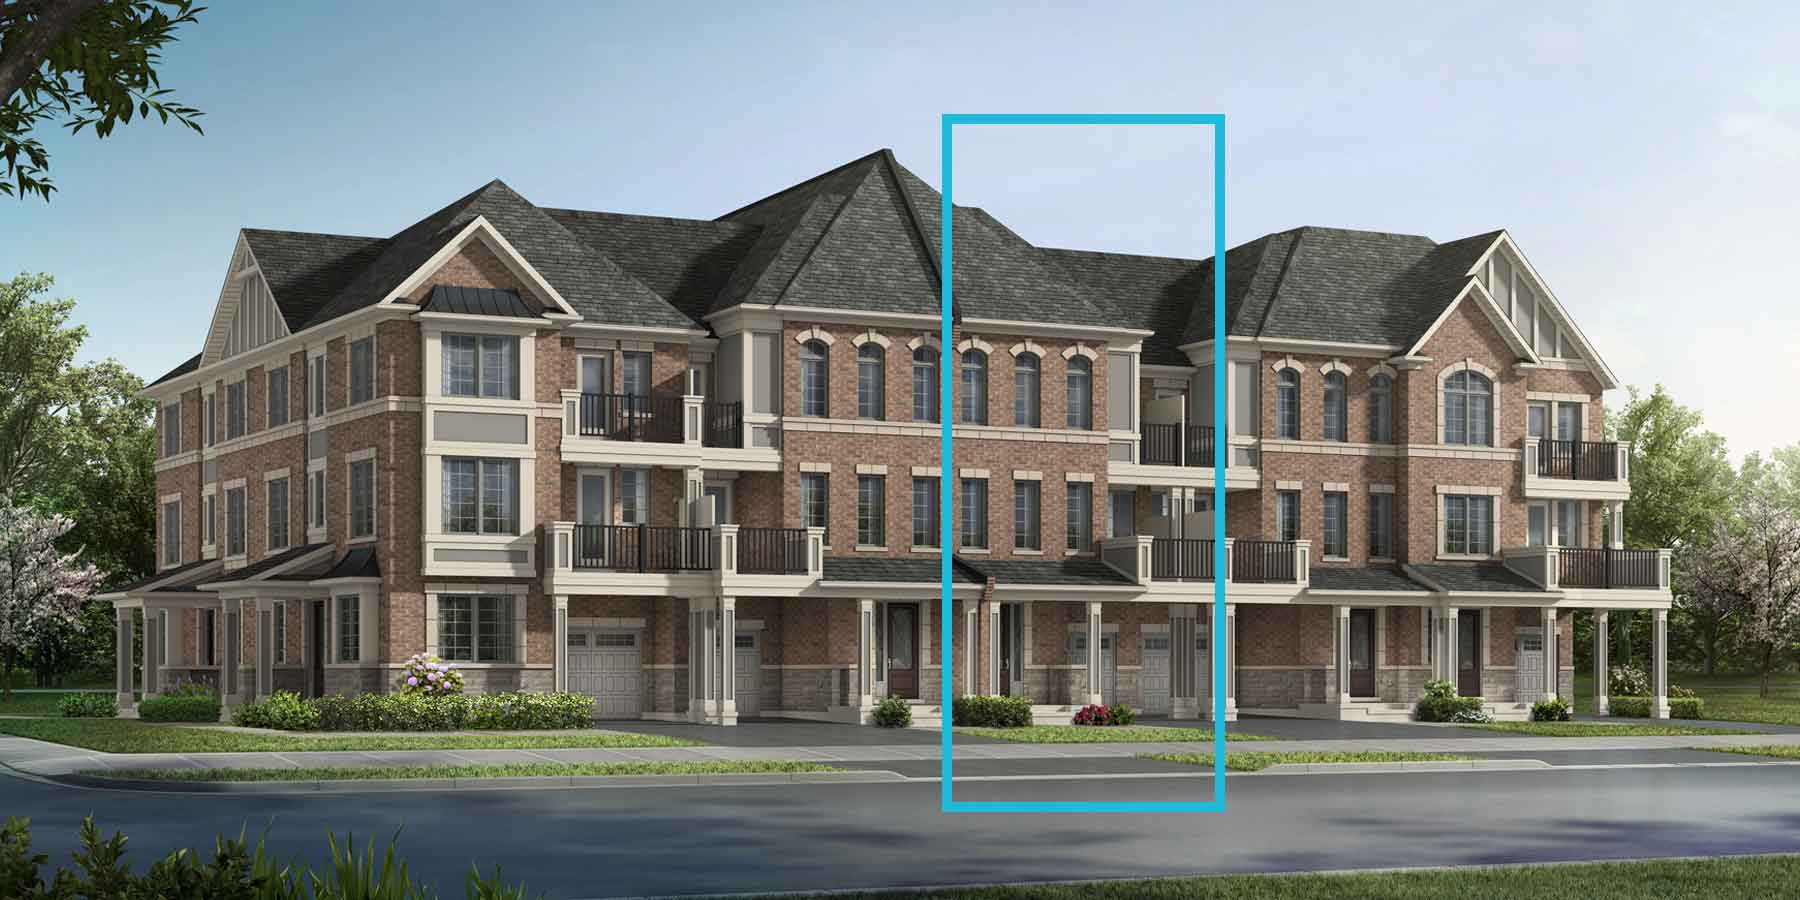 Springwater TownHomes in Markham Ontario by Mattamy Homes